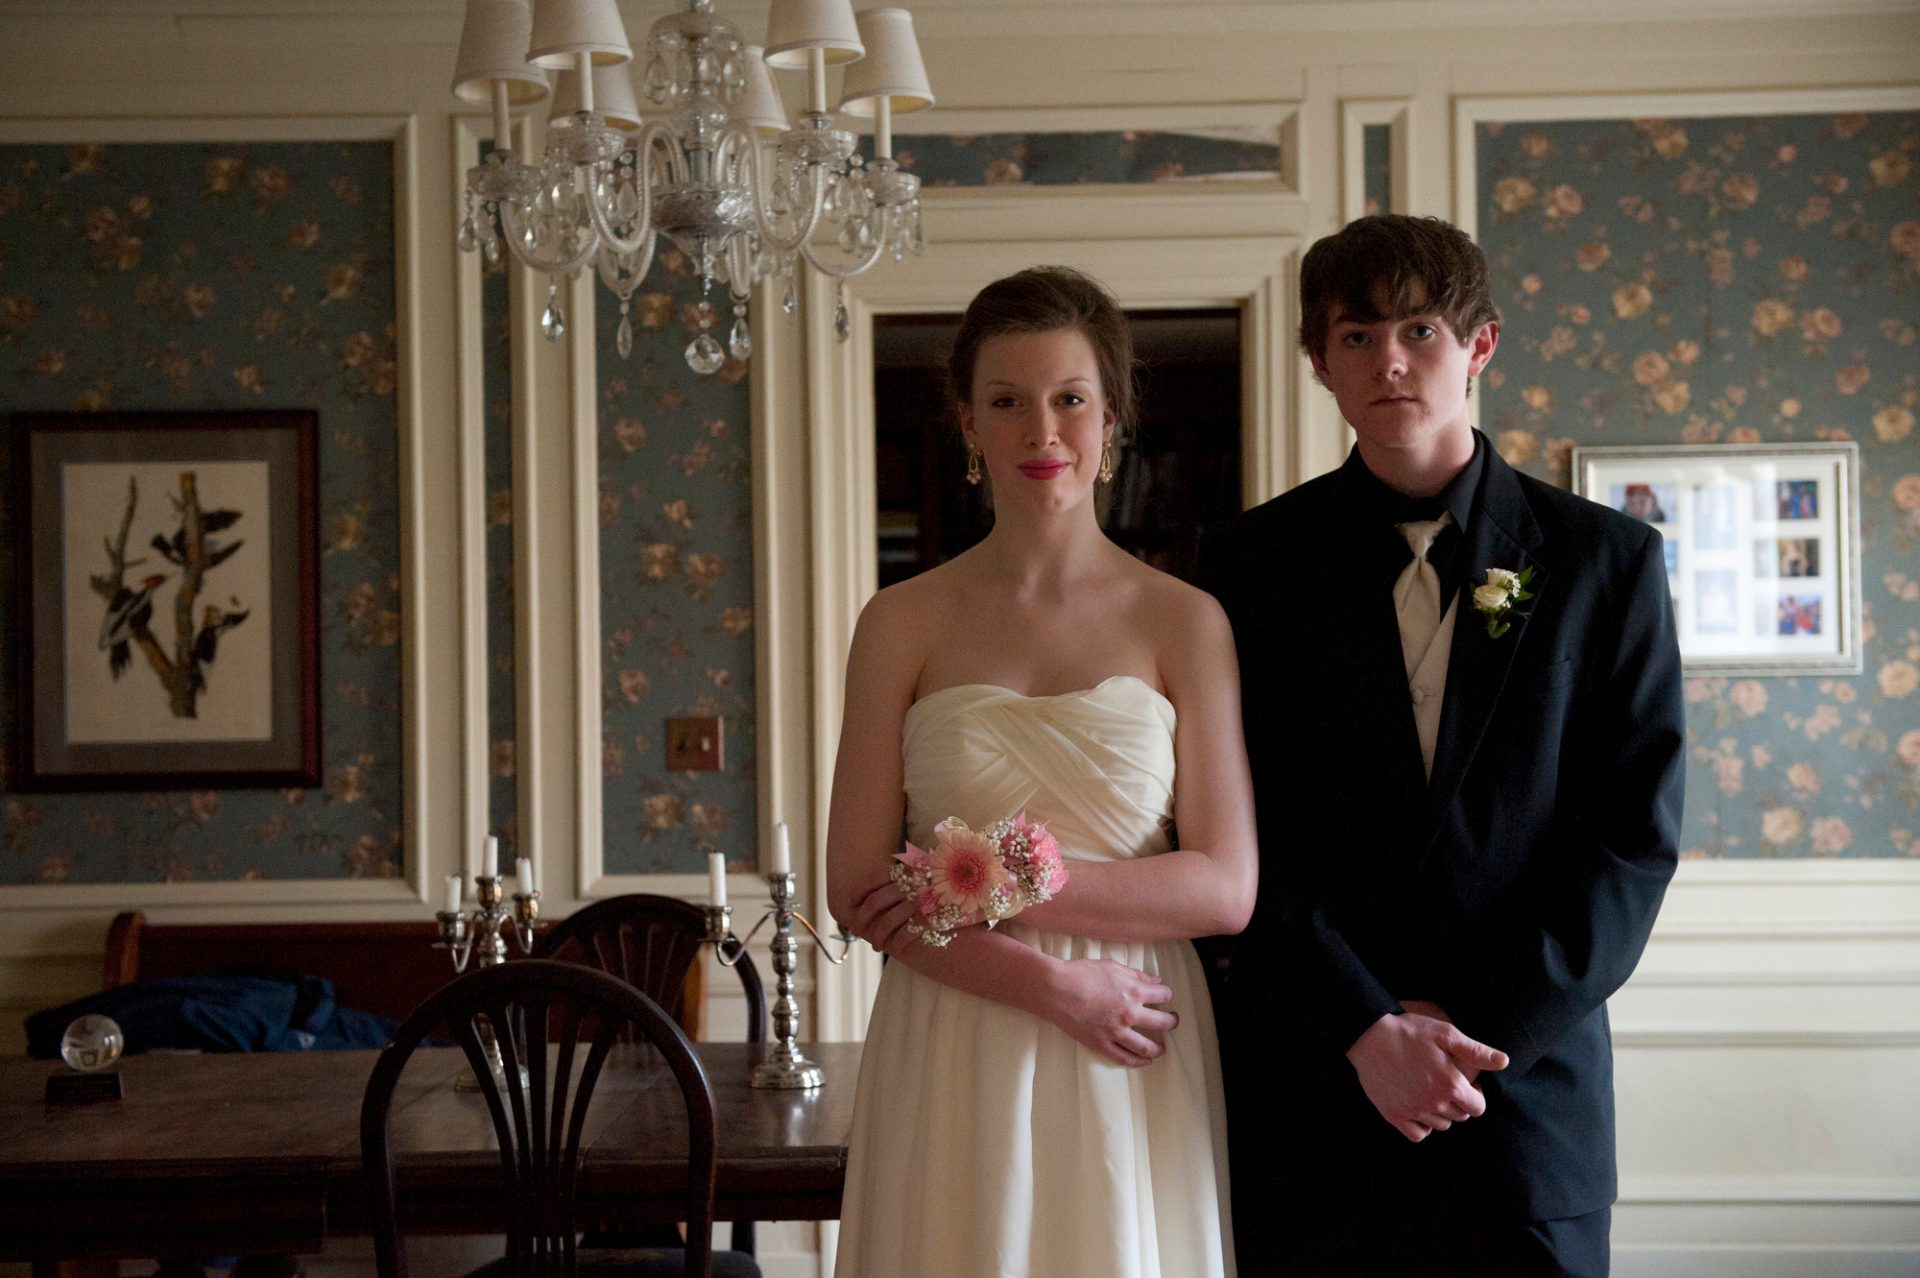 Photo: A young couple prepares for prom.